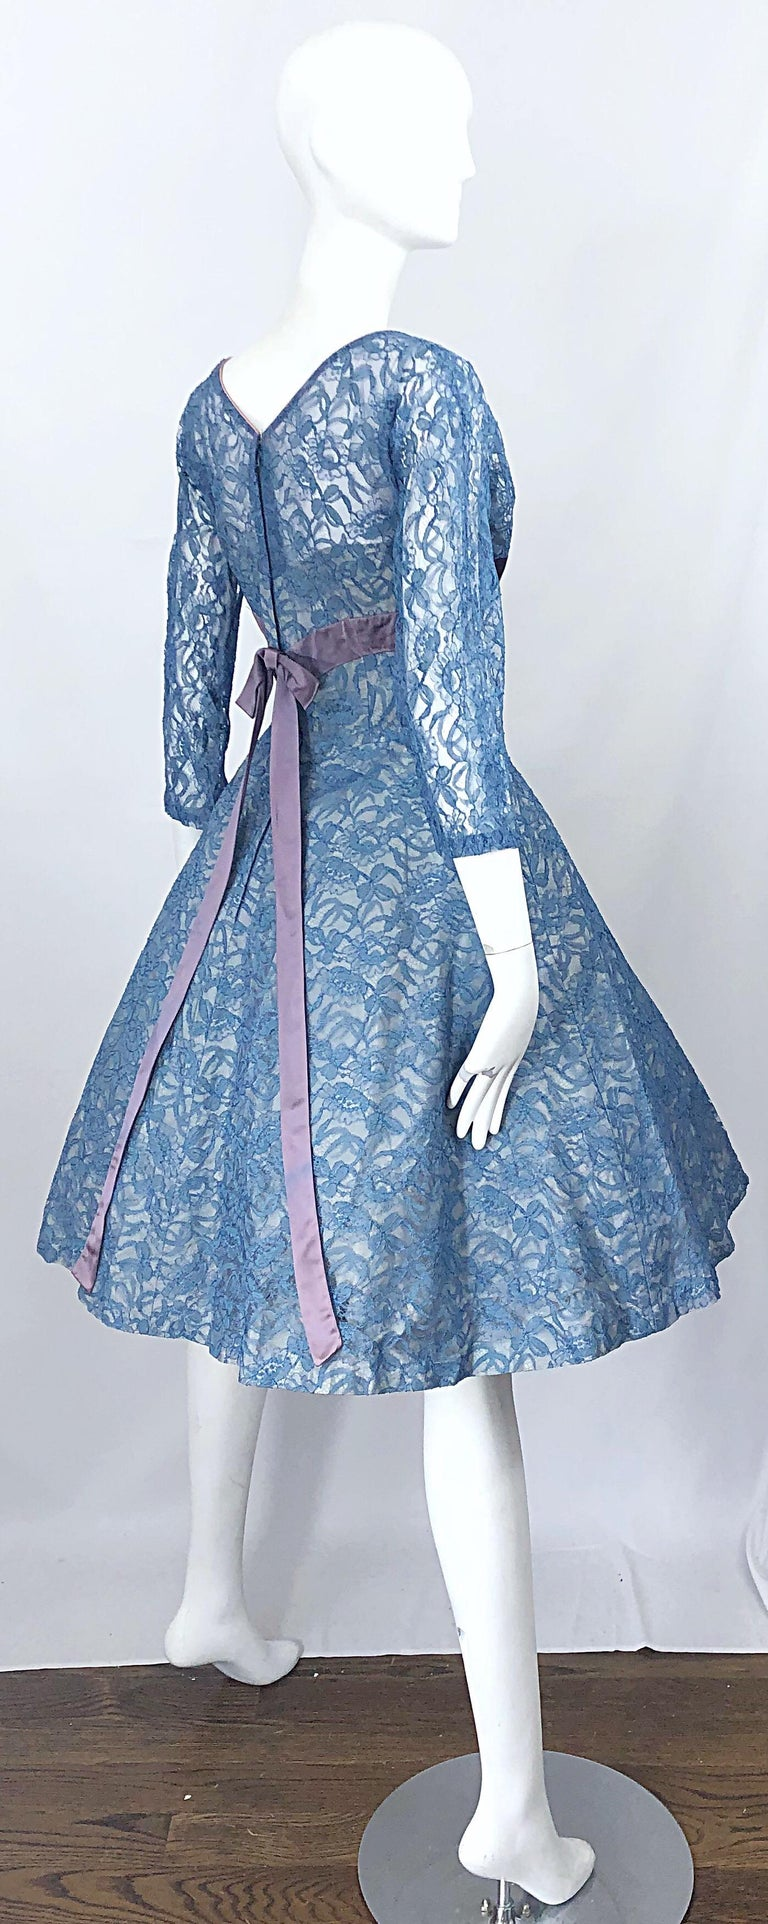 1950s Demi Couture Periwinkle Blue Chantily Lace Fit n' Flare Vintage 50s Dress In Excellent Condition For Sale In Chicago, IL